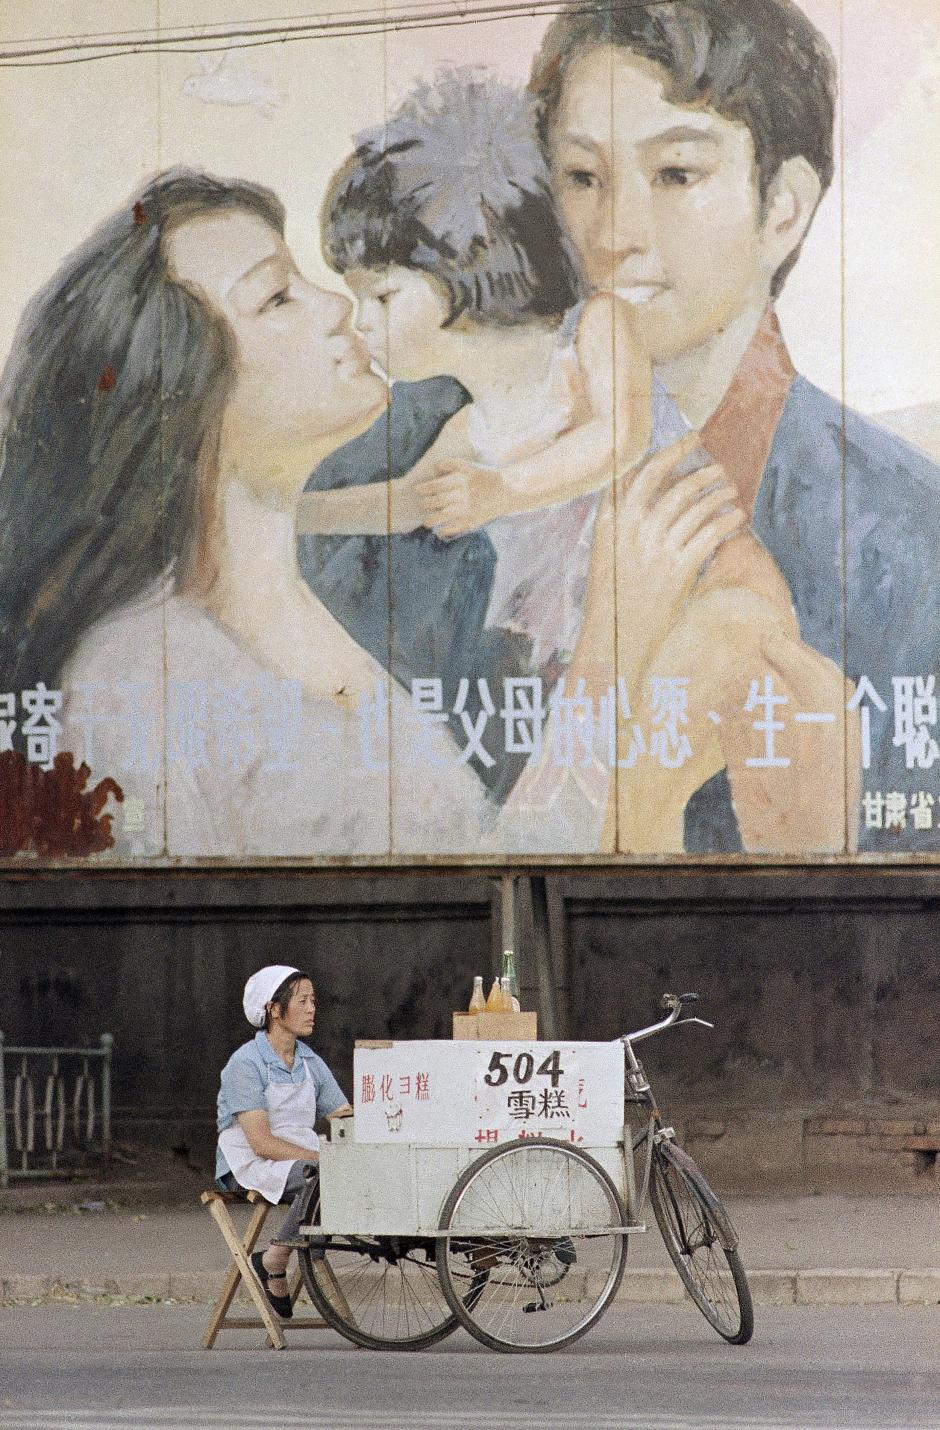 A street vendor awaits customers beneath a billboard exhorting people to adhere to China's one-child policy, in Lanzhou, China on August 4, 1988. China recently lifted the policy, allowing families to have a second child. Mark Avery/AP